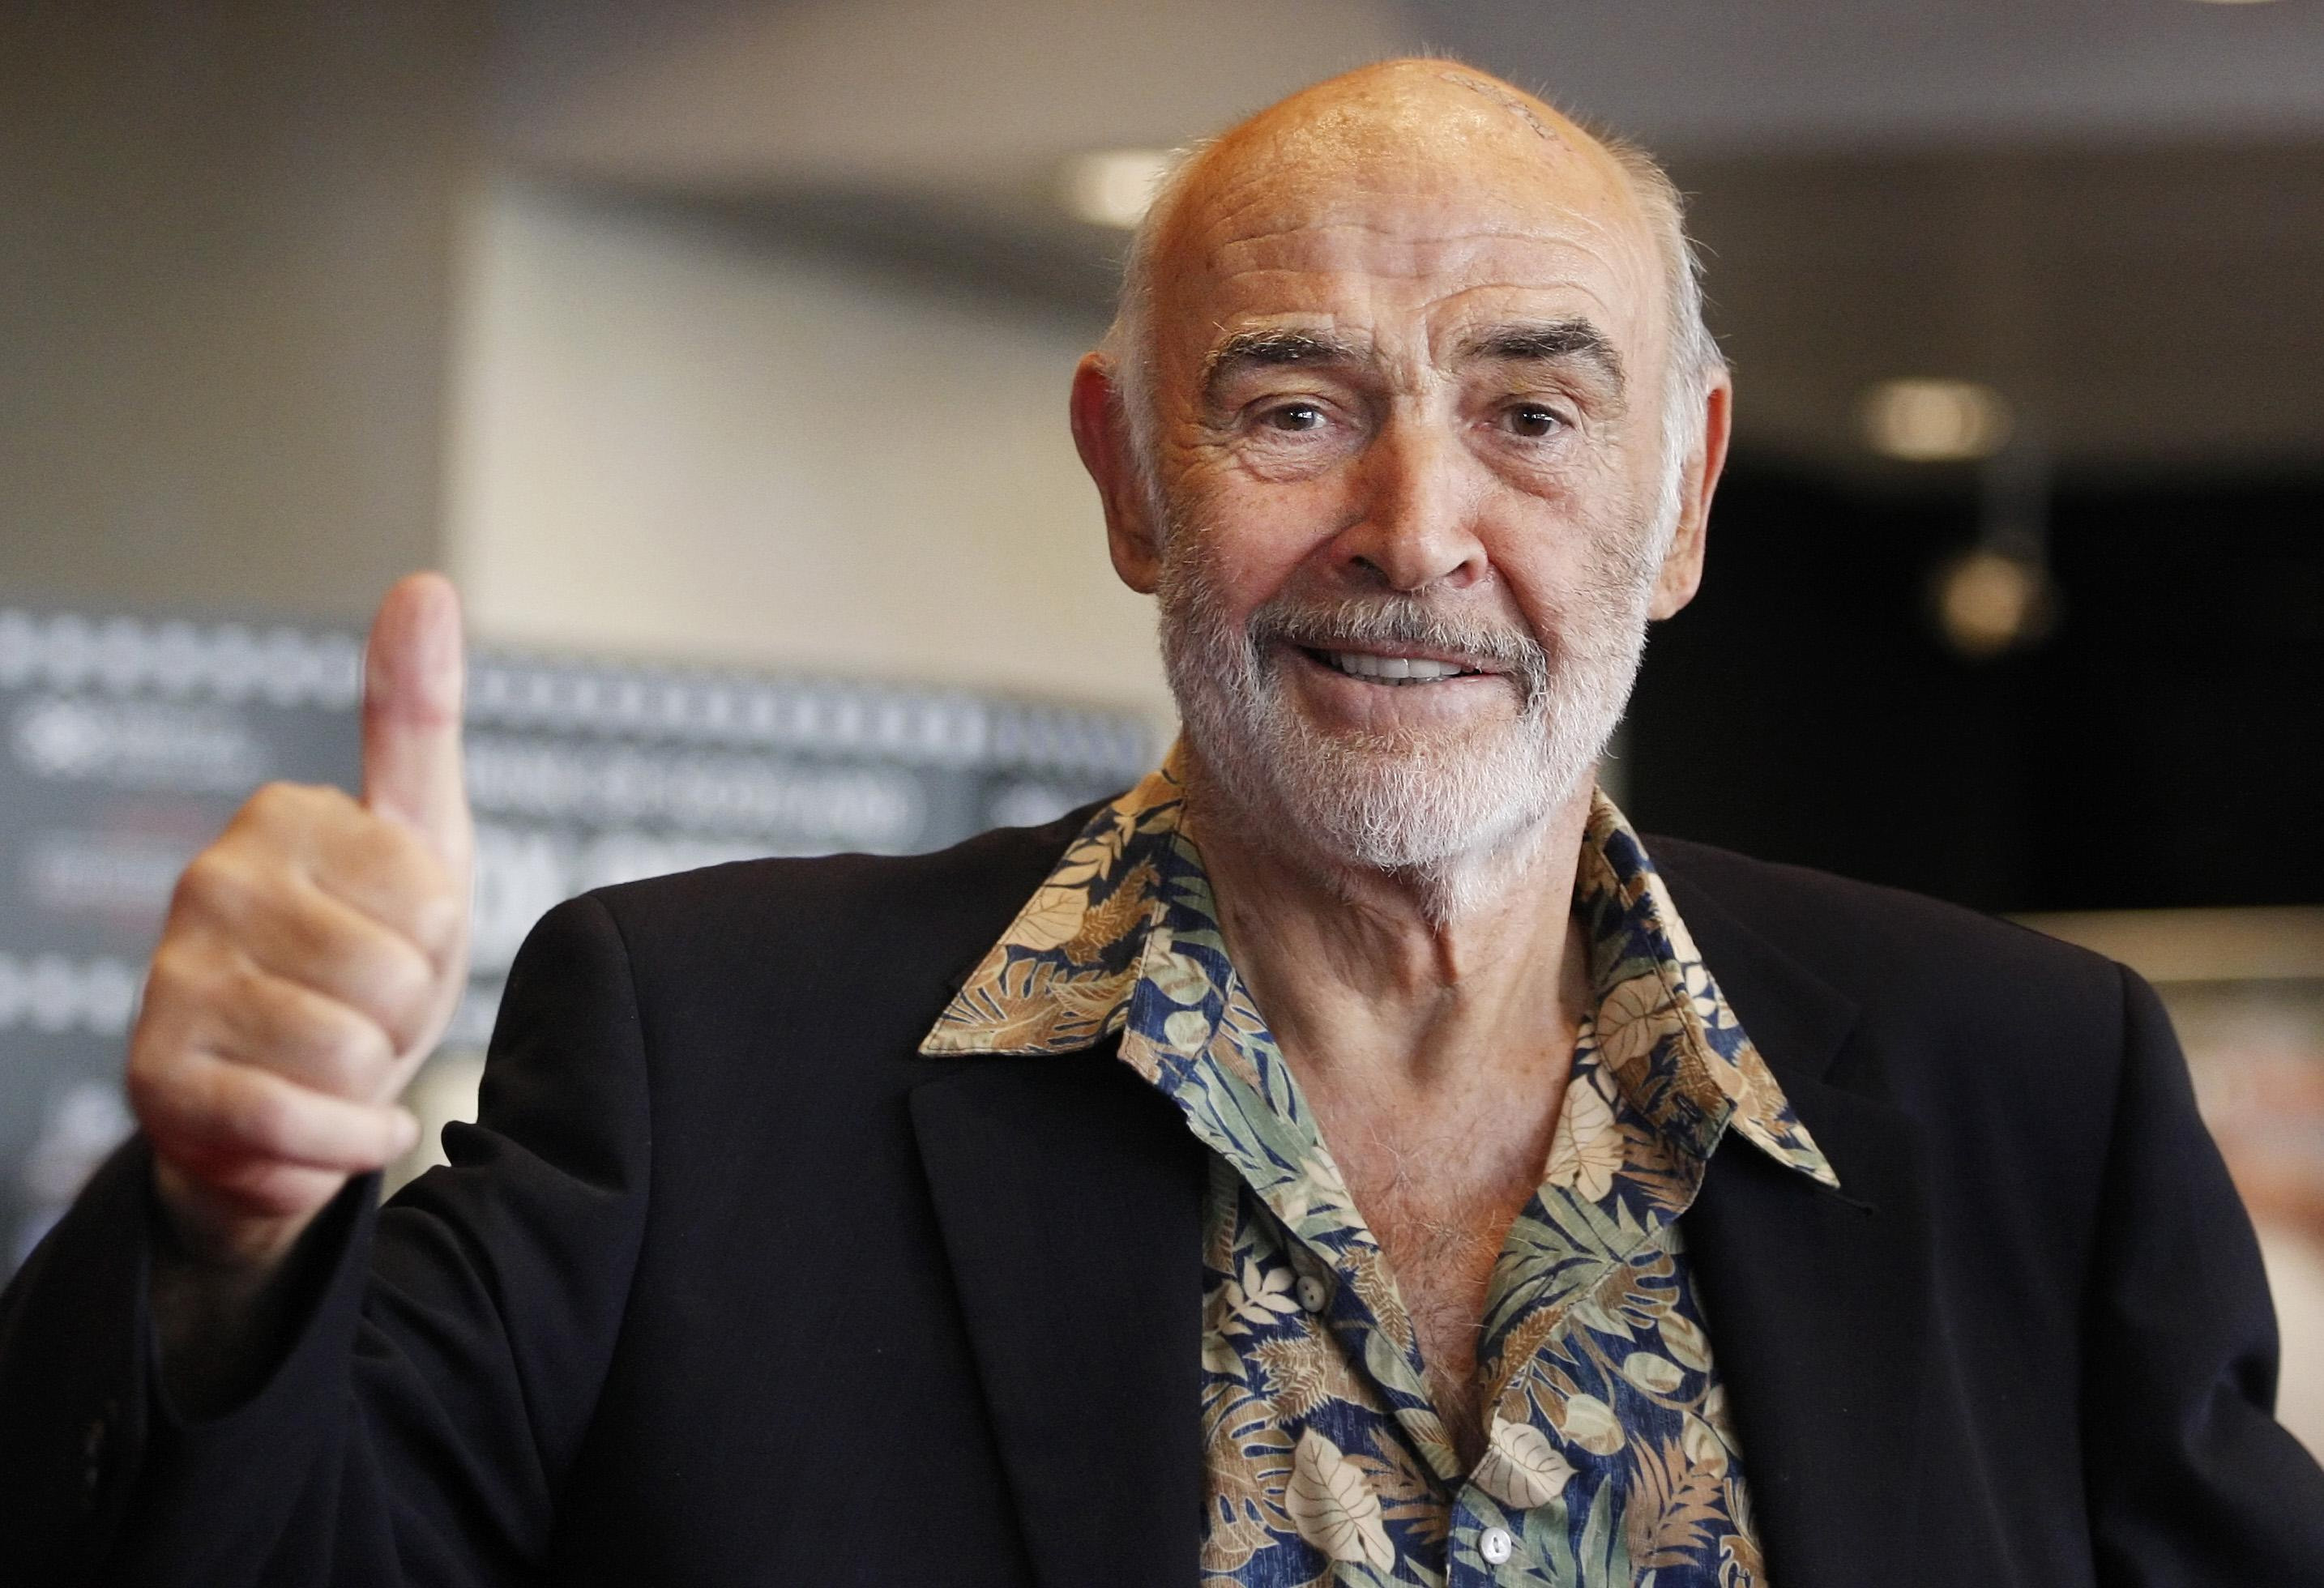 Sir Sean Connery gave Vito's the thumbs up on his visits to Edinburgh.